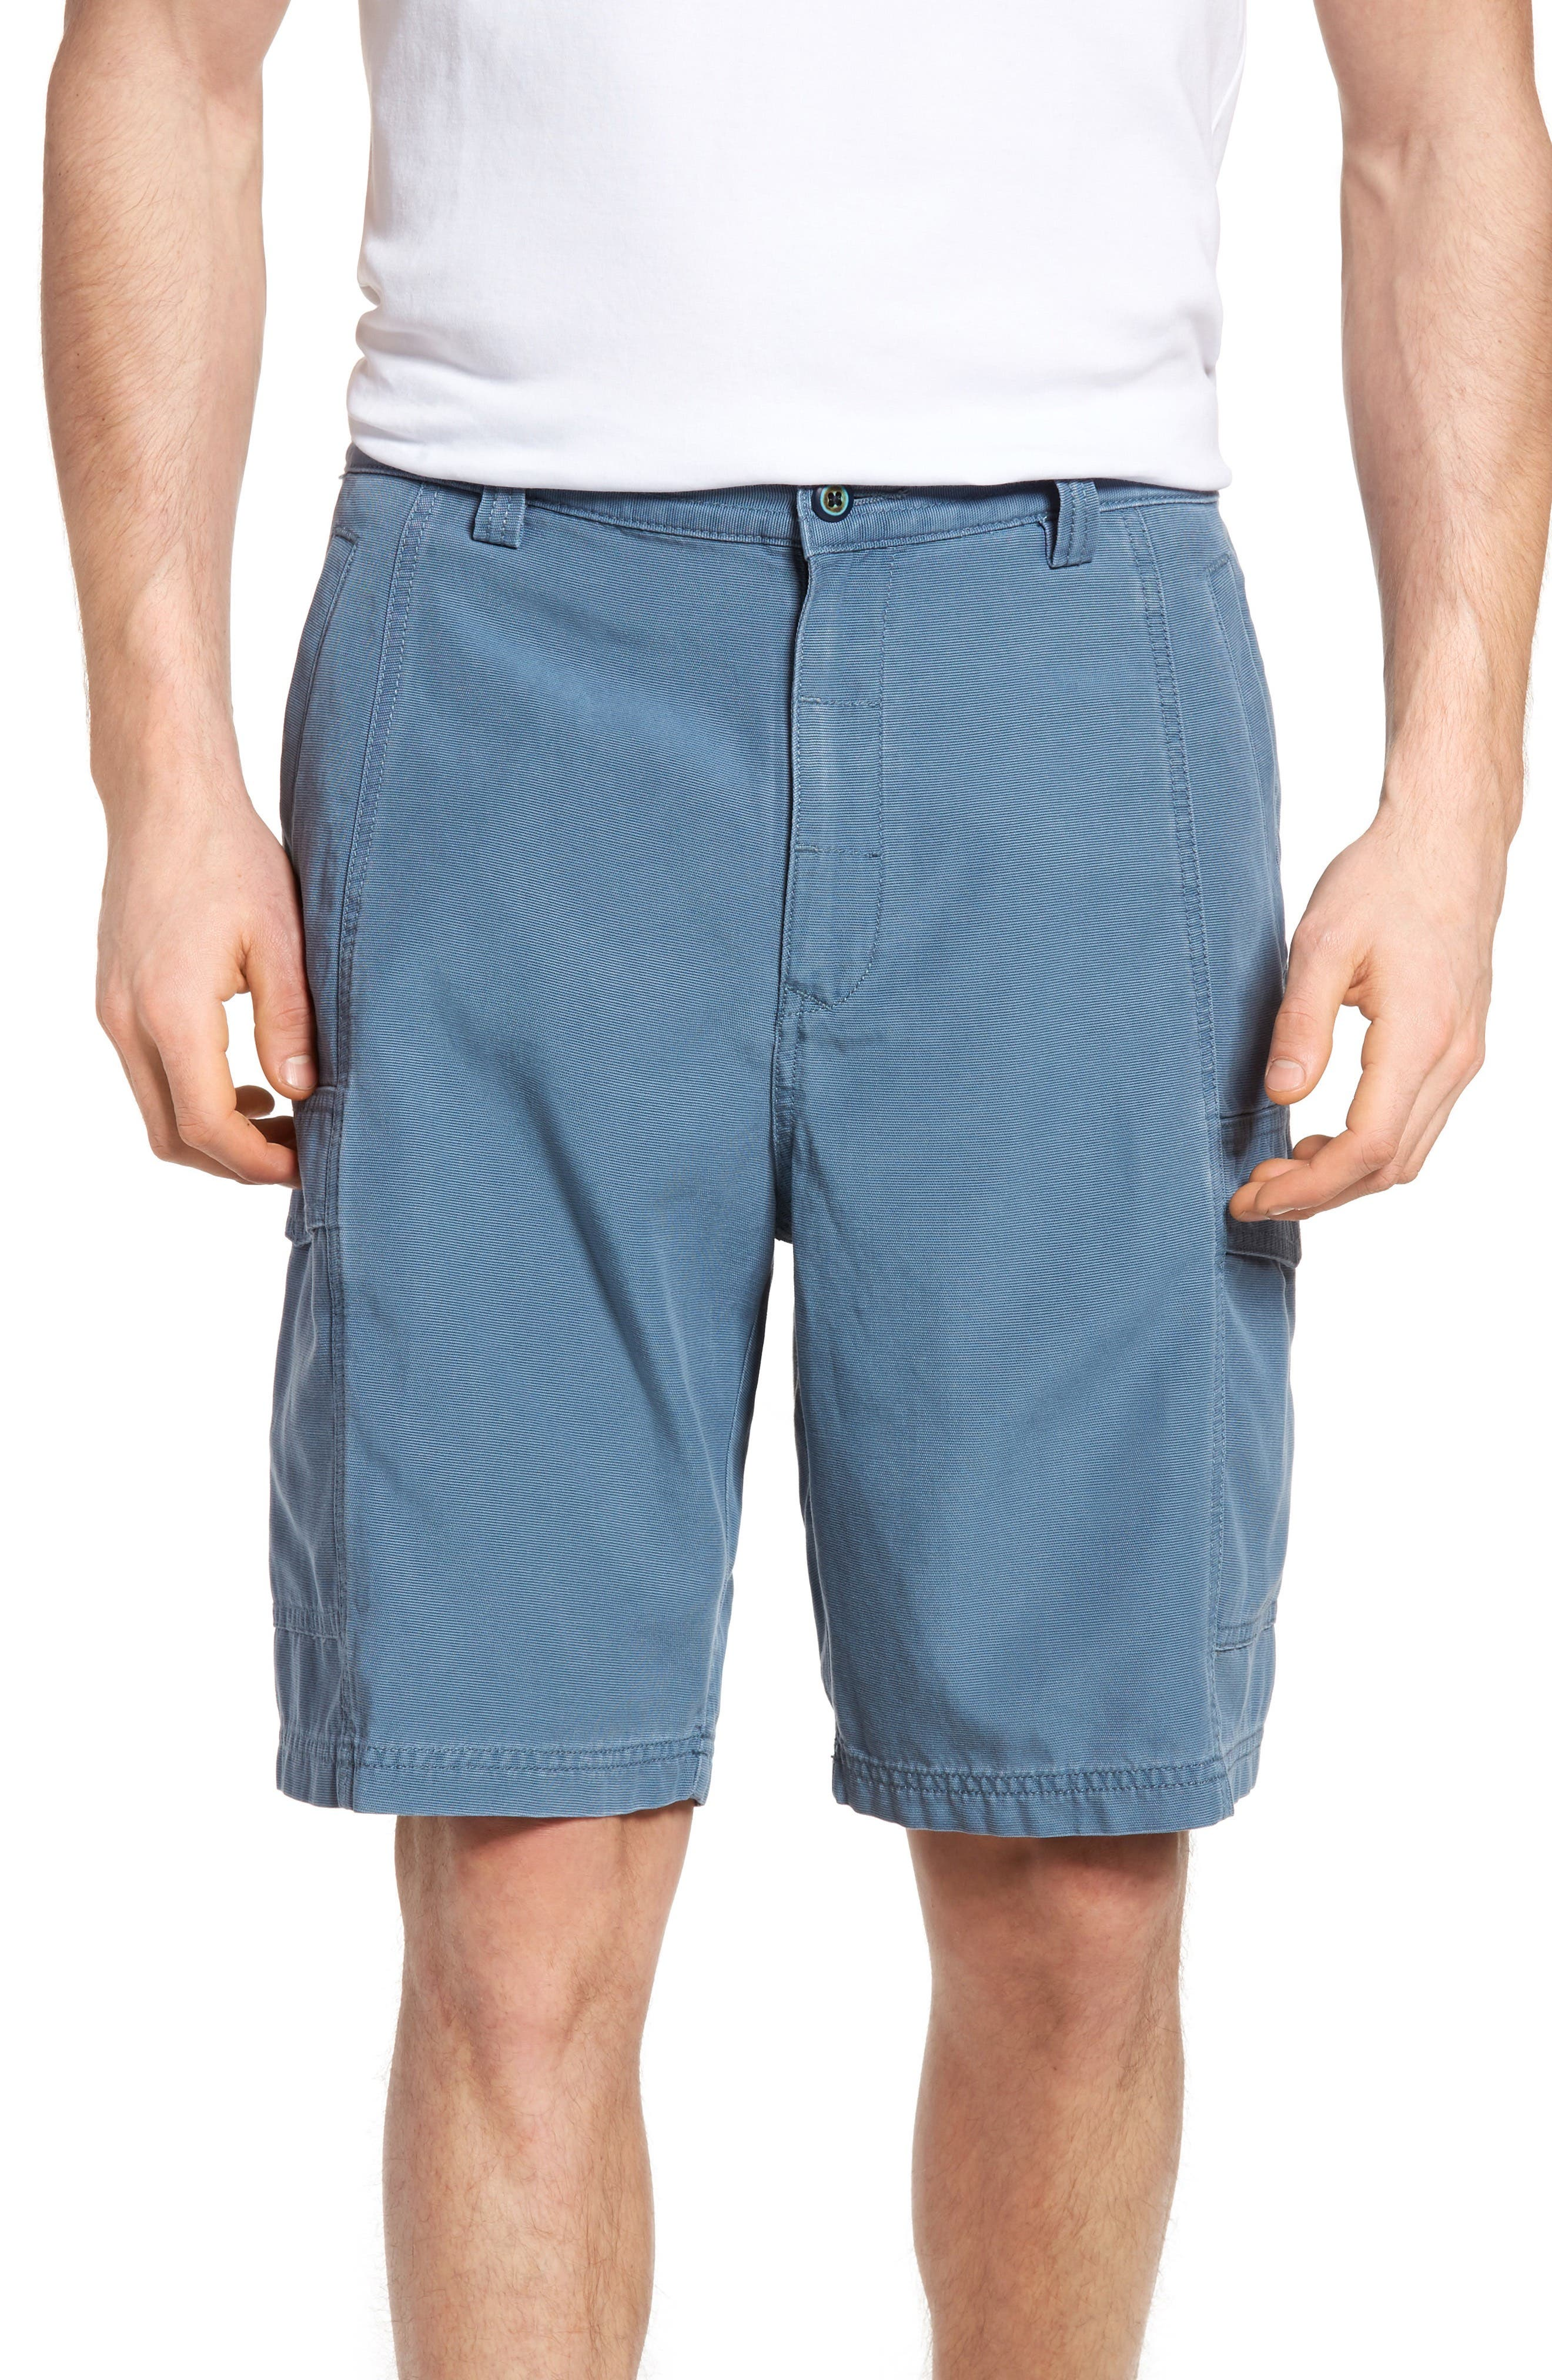 Alternate Image 1 Selected - Tommy Bahama 'Key Grip' Relaxed Fit Cargo Shorts